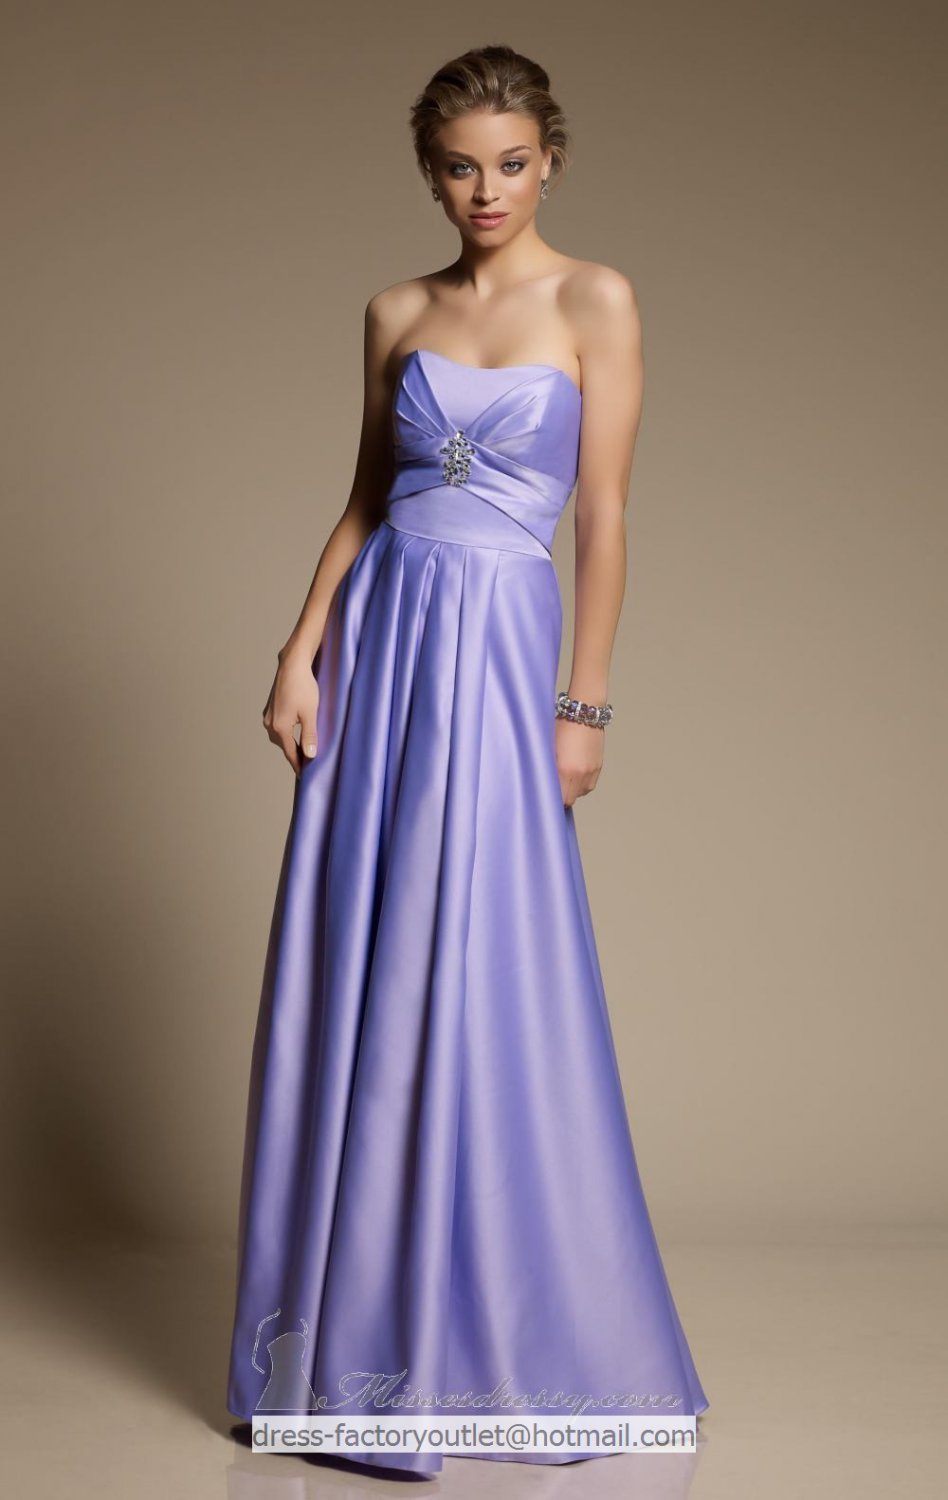 Bridesmaid Dresses Sydney Designer - Wedding Dresses In Redlands